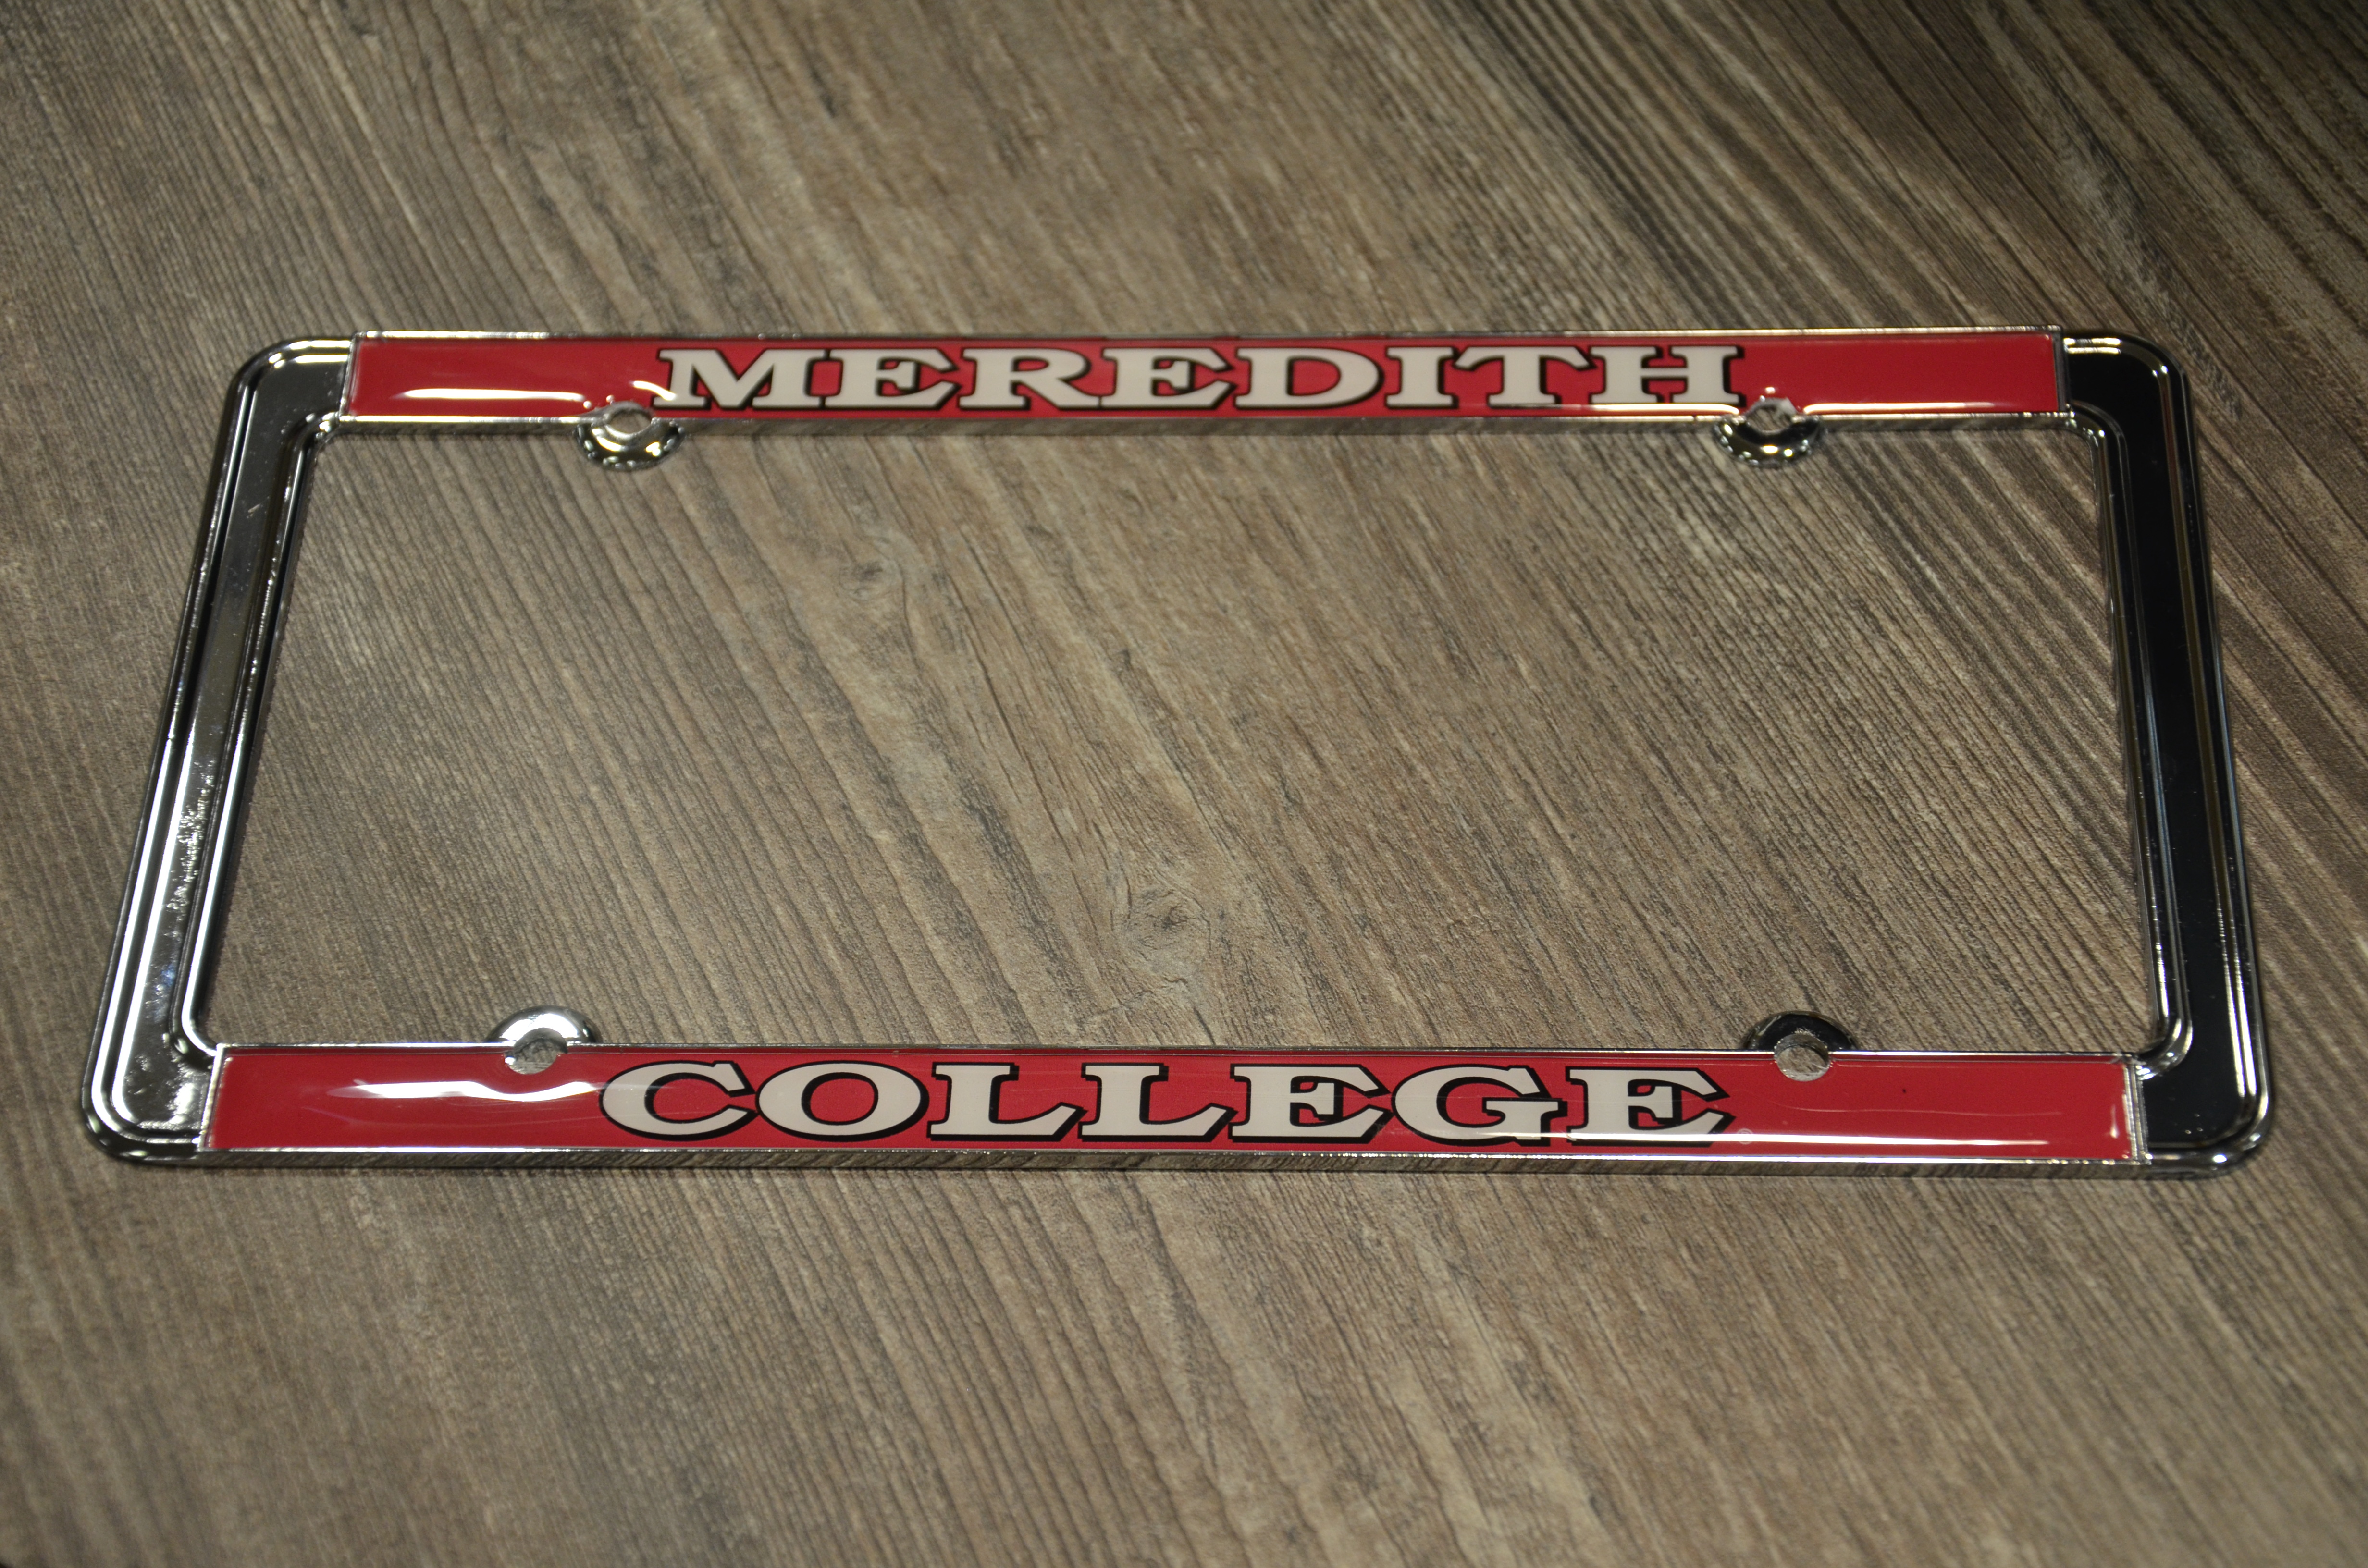 Image for the License Plate Frame, Meredith College product